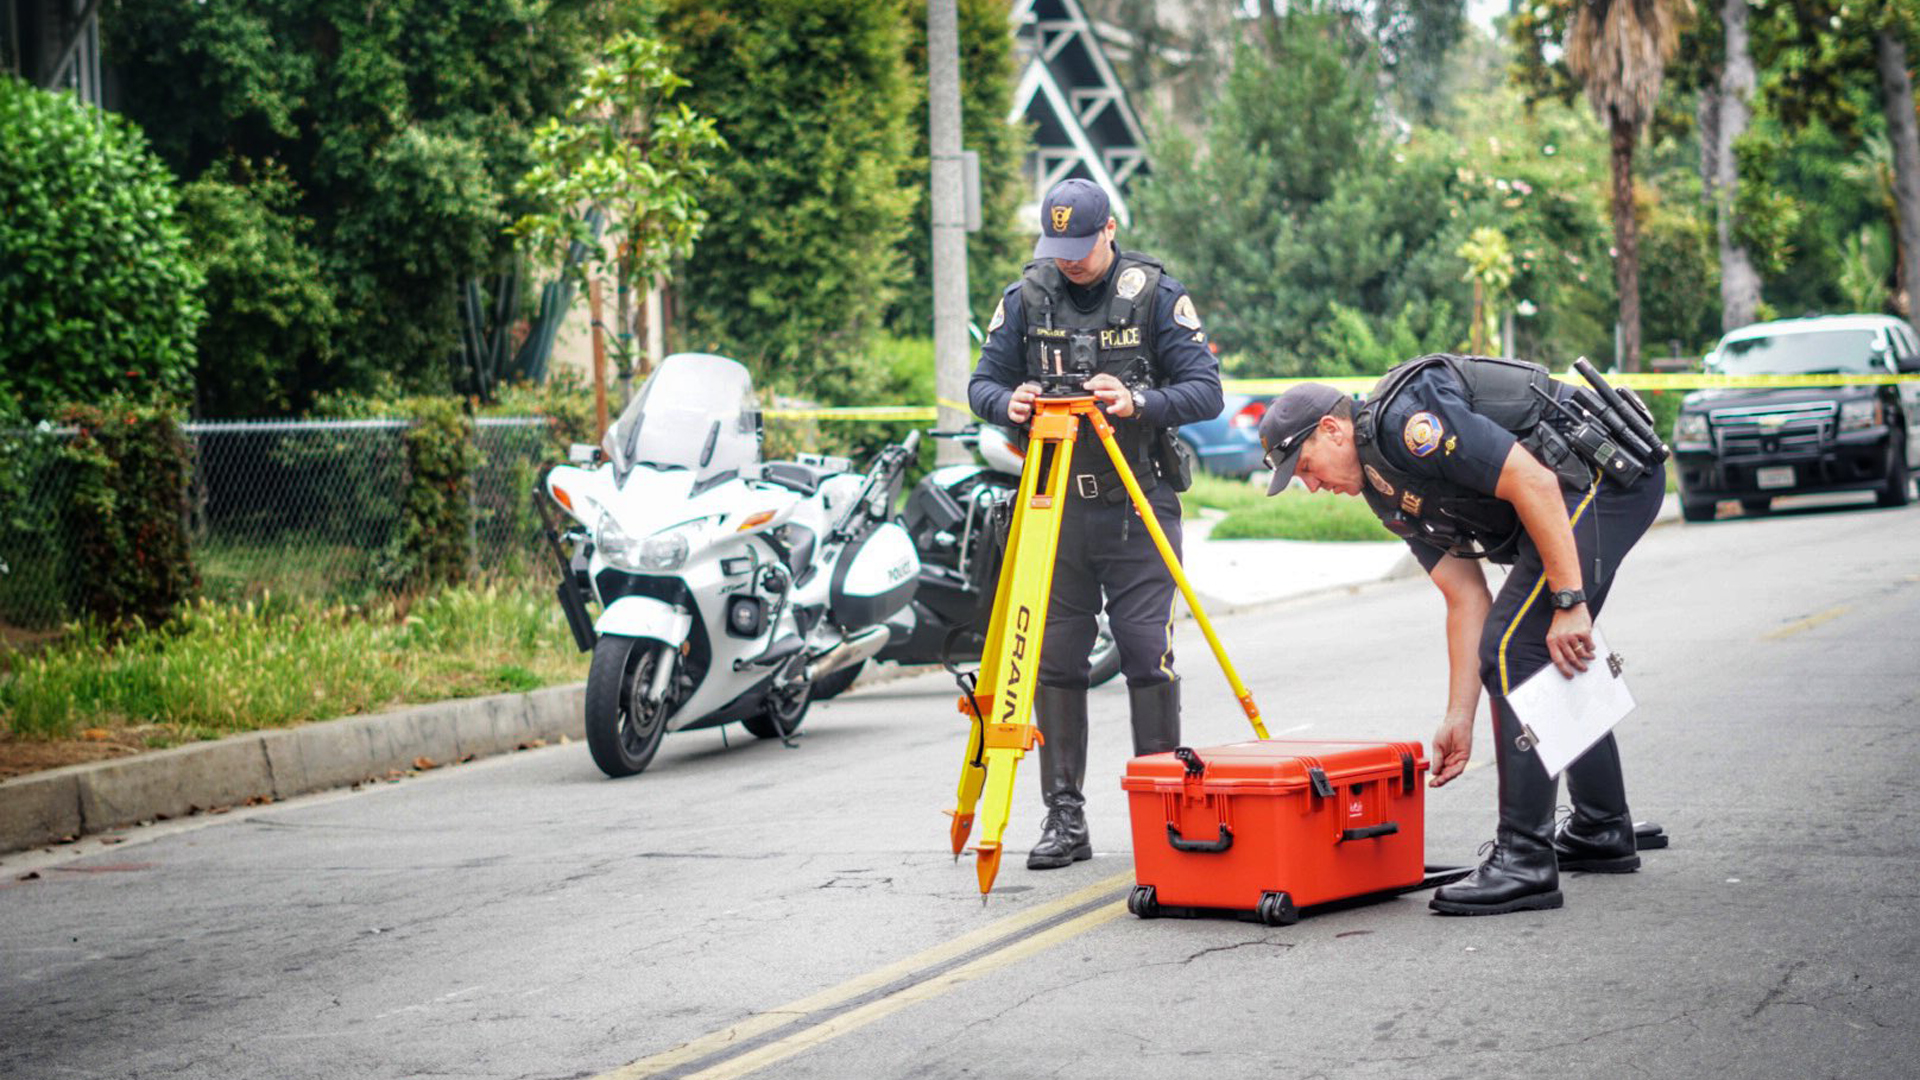 Police investigate the scene of a fatal car collision at El Molina Avenue and Villa Street in Pasadena on June 13, 2019. (Credit: Pasadena Police Department)